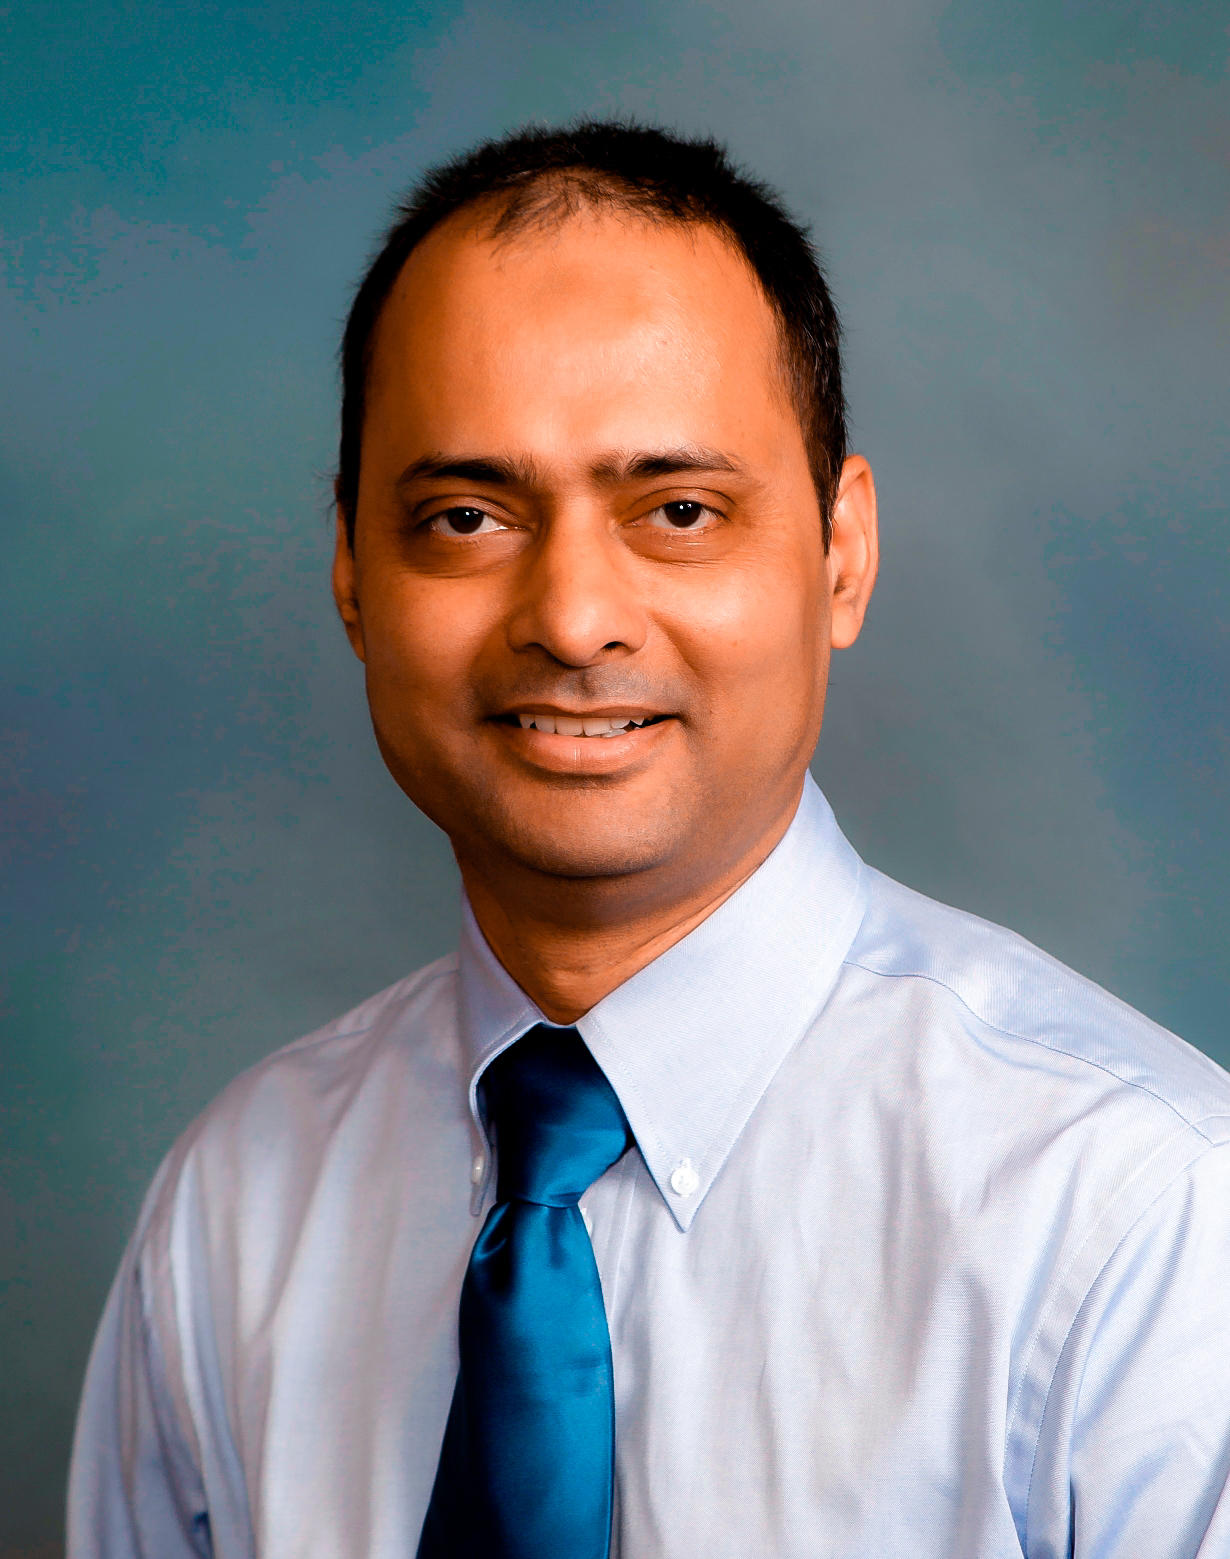 Dr. Syed Ahmed, MD image 3